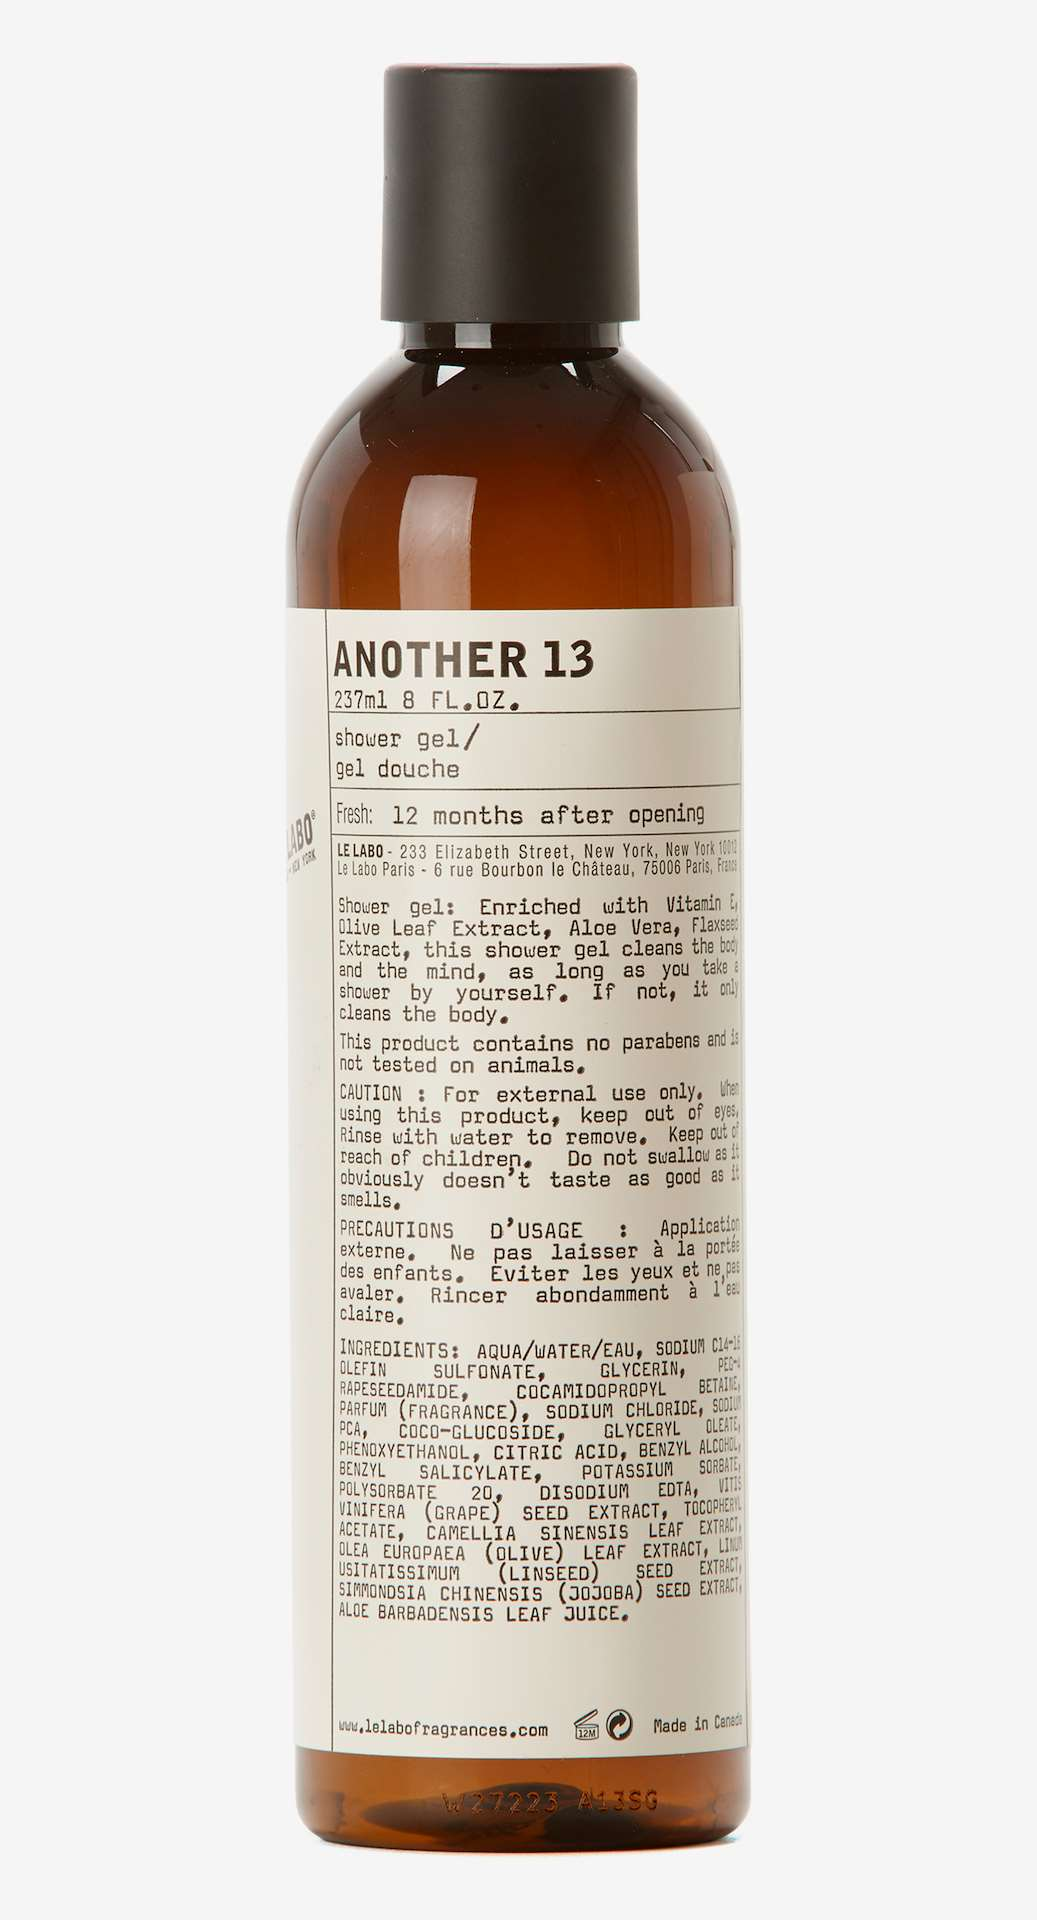 f3b3cb40f522 Another 13 Shower Gel - Le Labo - KICKS